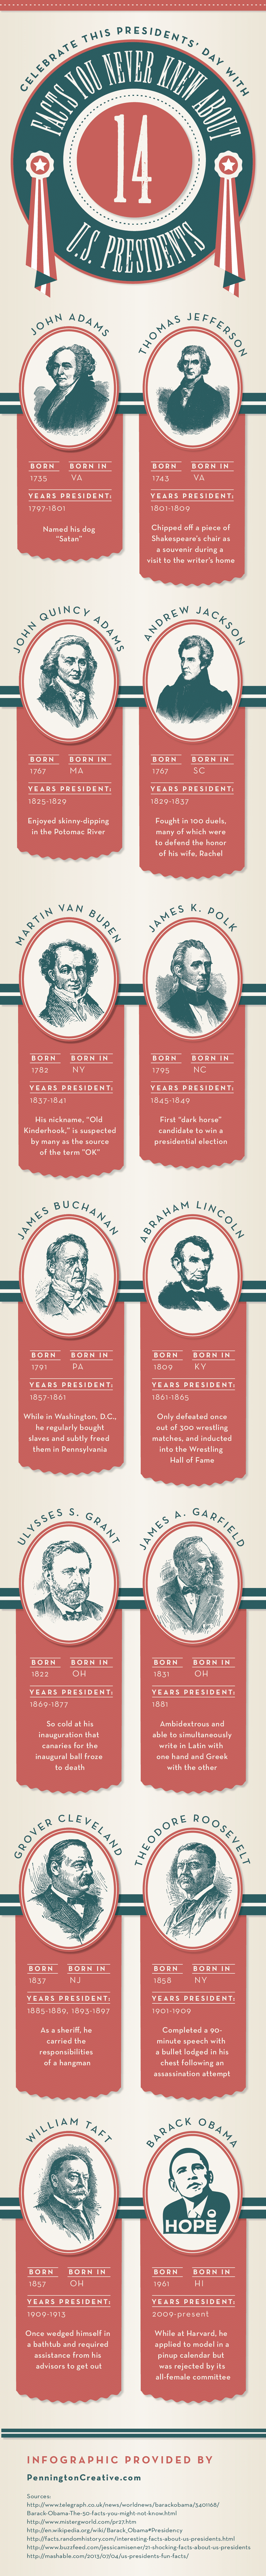 Presidents' Day Infographic